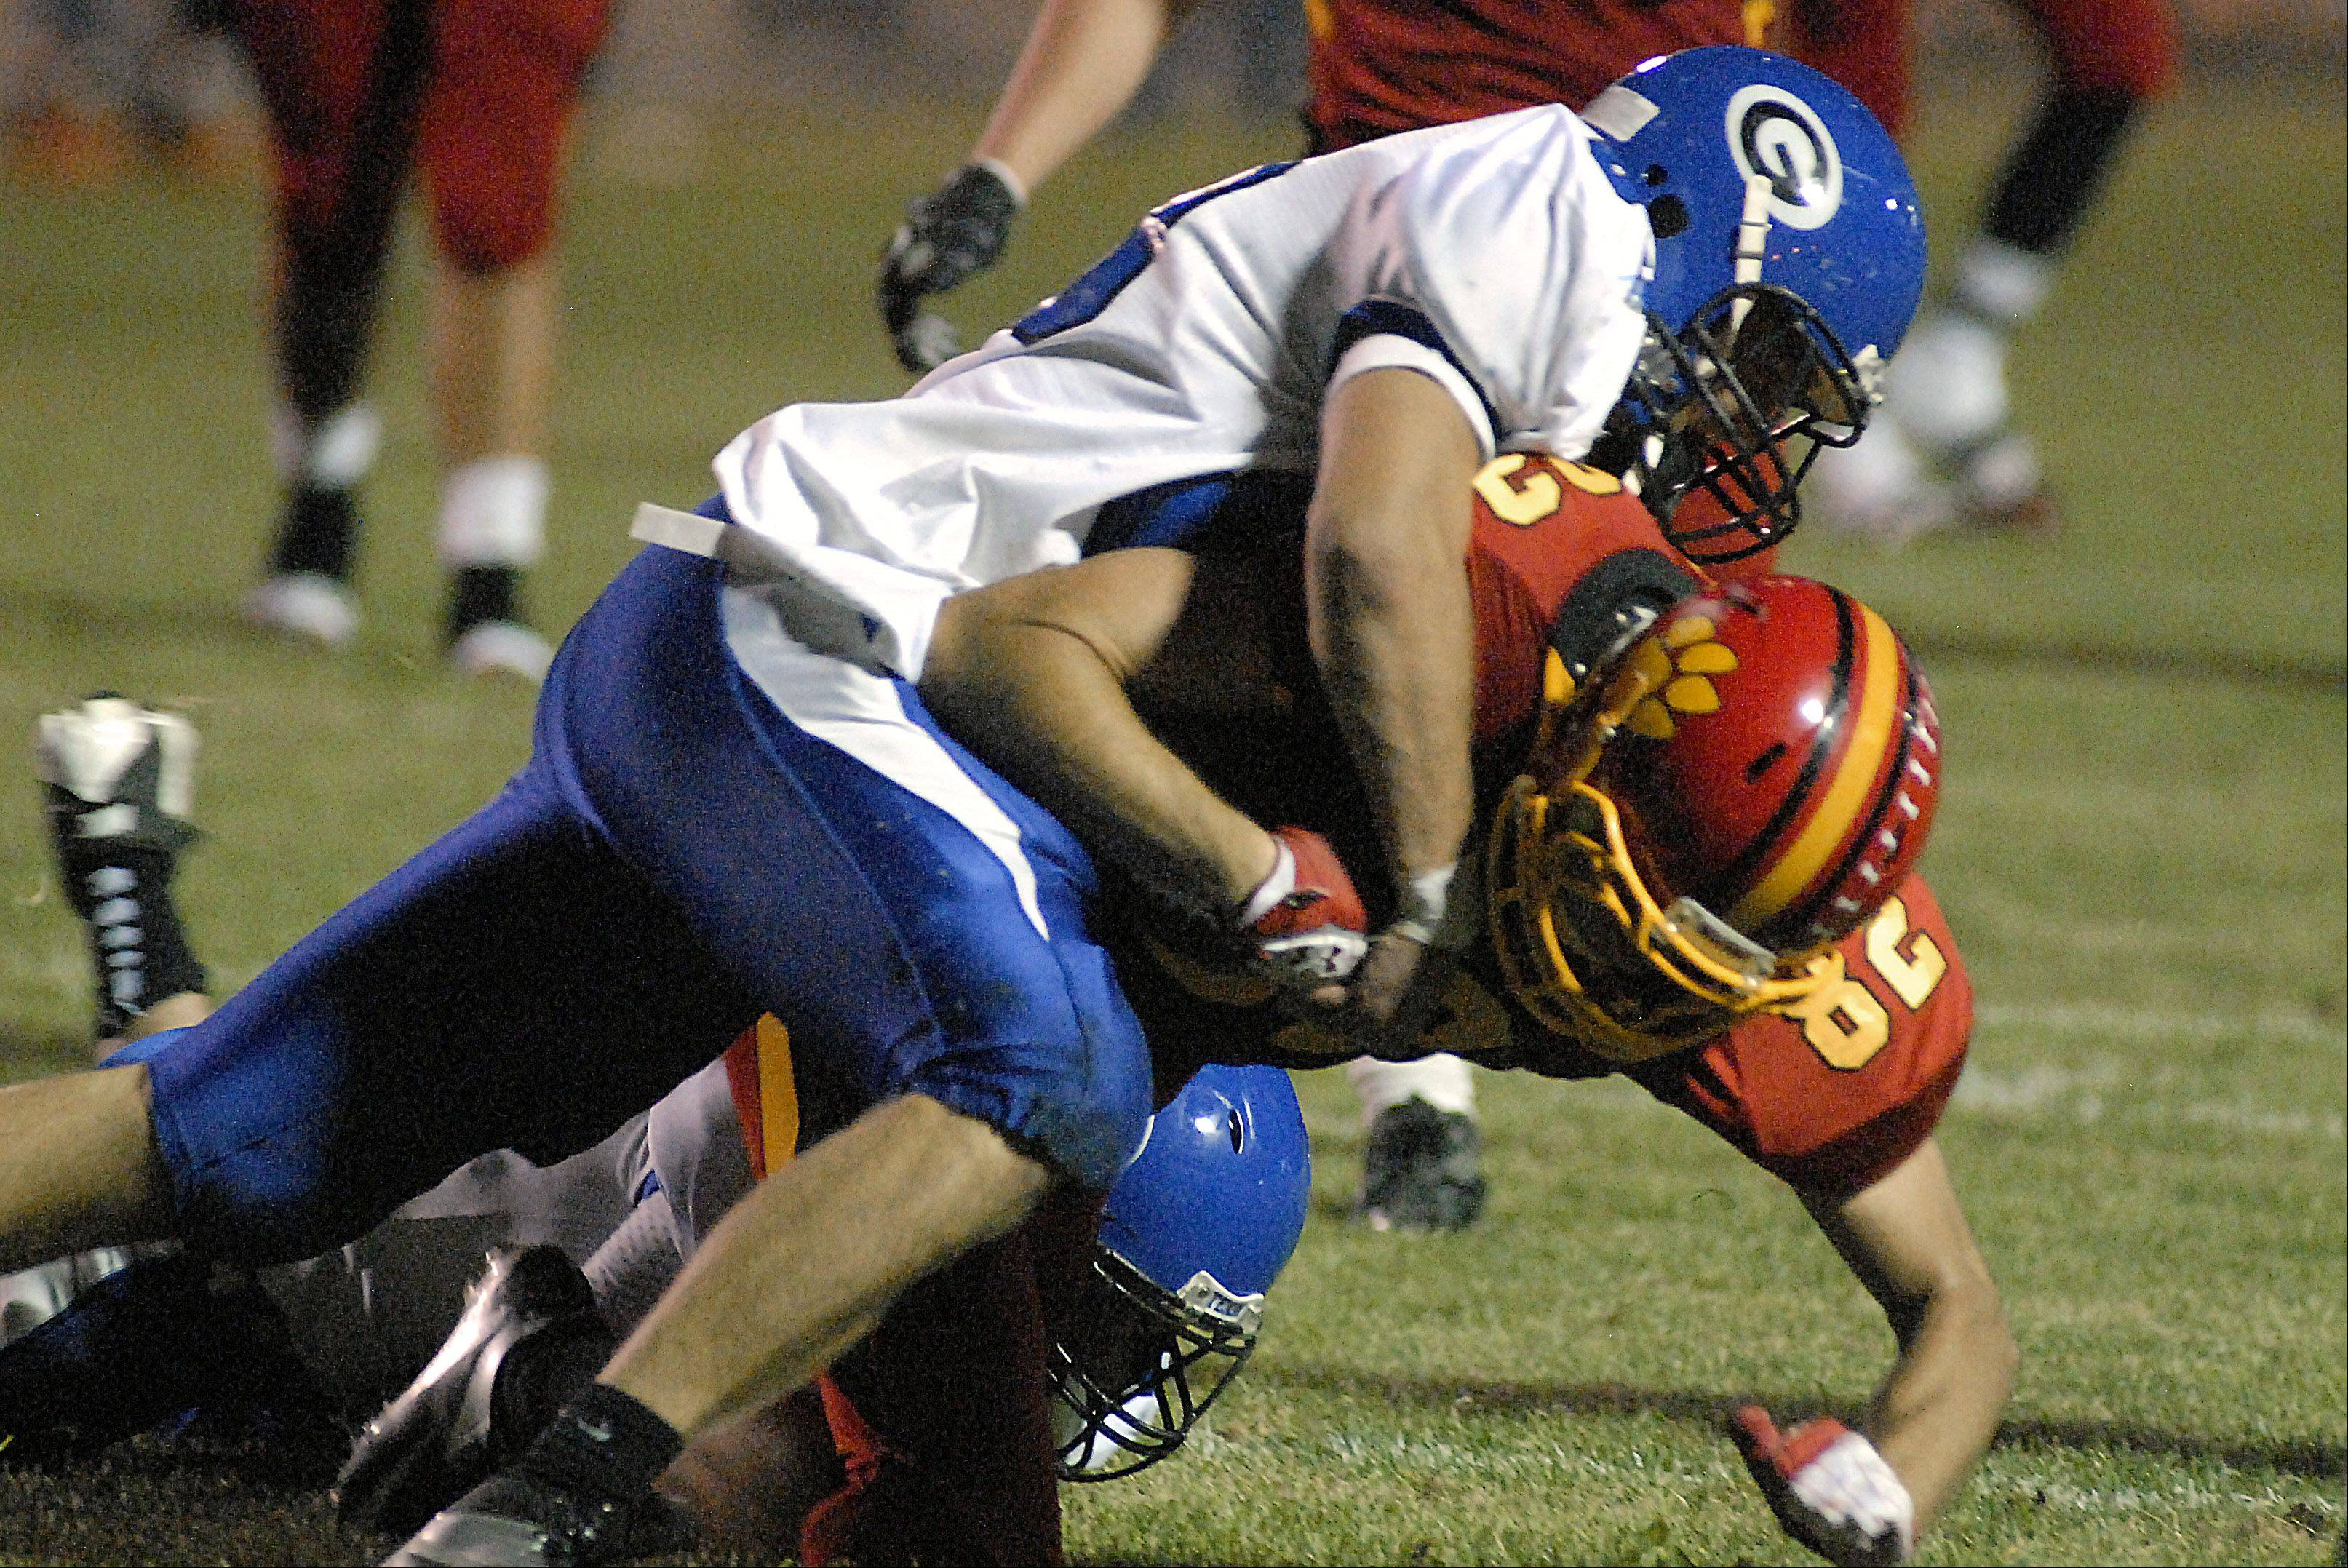 Geneva's Billy Douds takes down Batavia's Zachary Strittmatter in the second quarter.